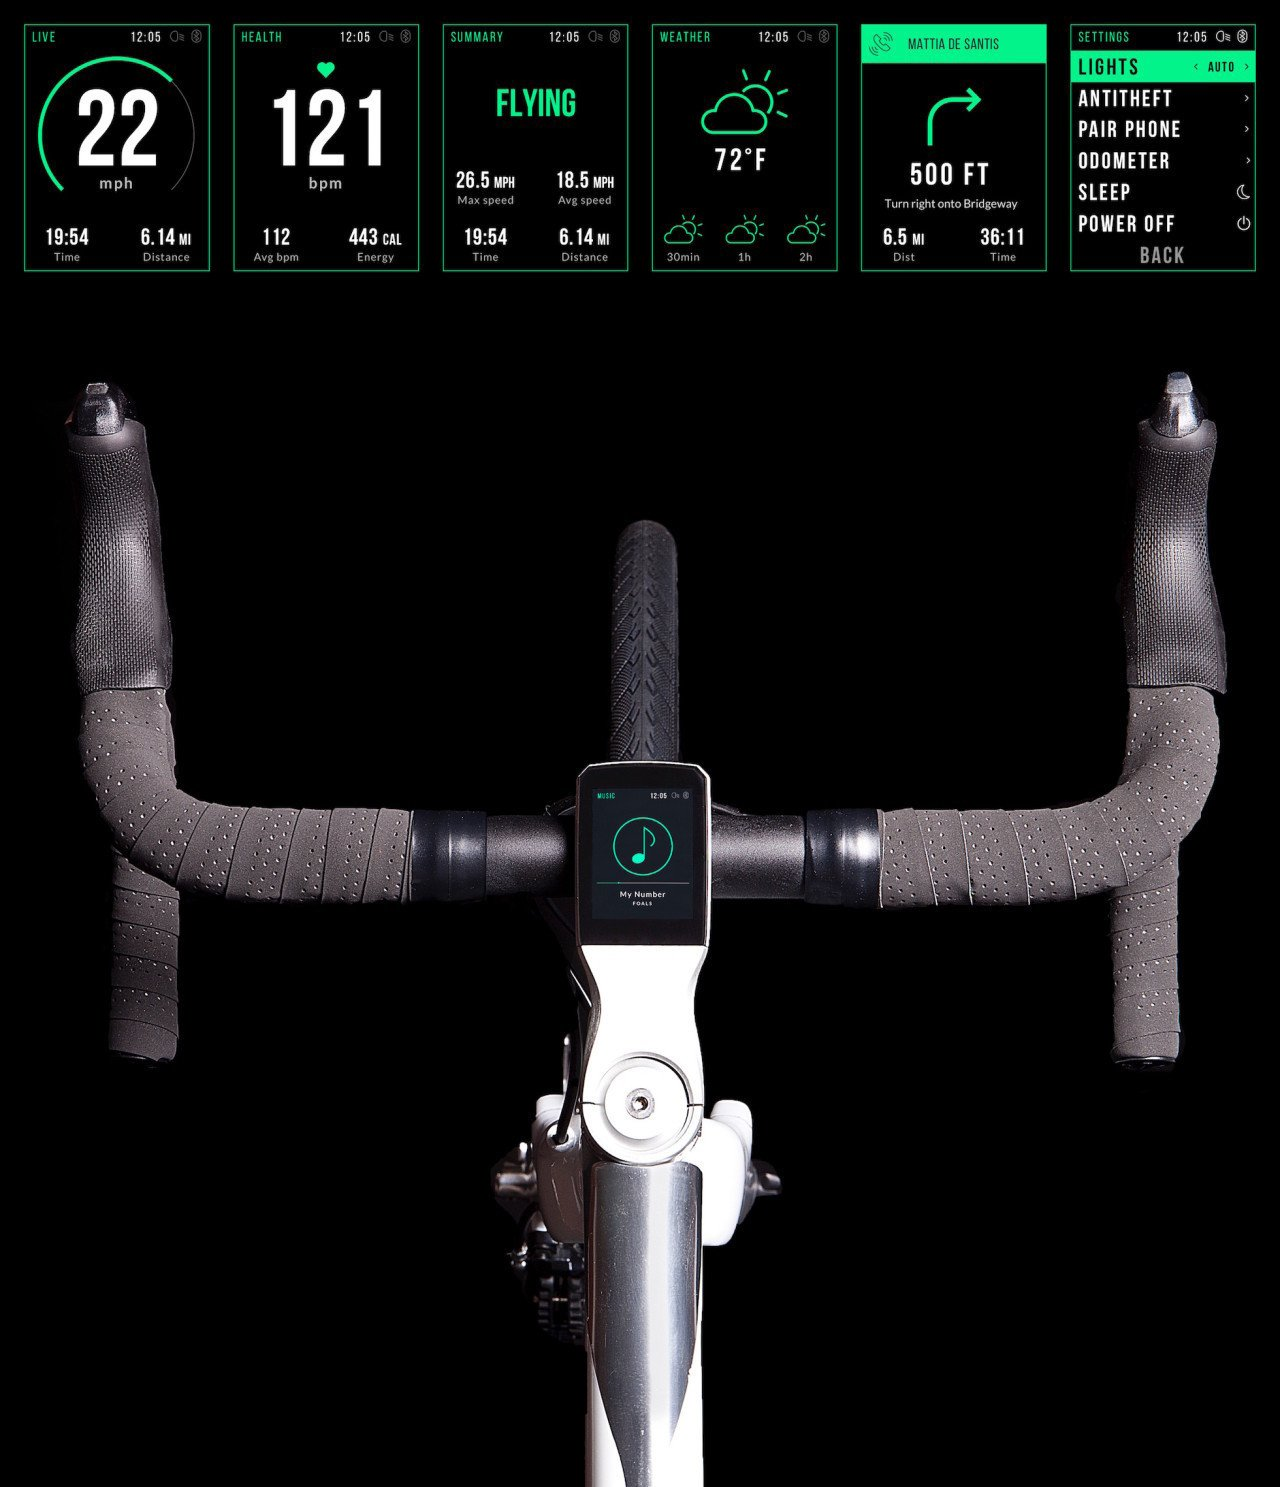 Photo 3 of 8 in VOLATA: The App Controlled Bicycle